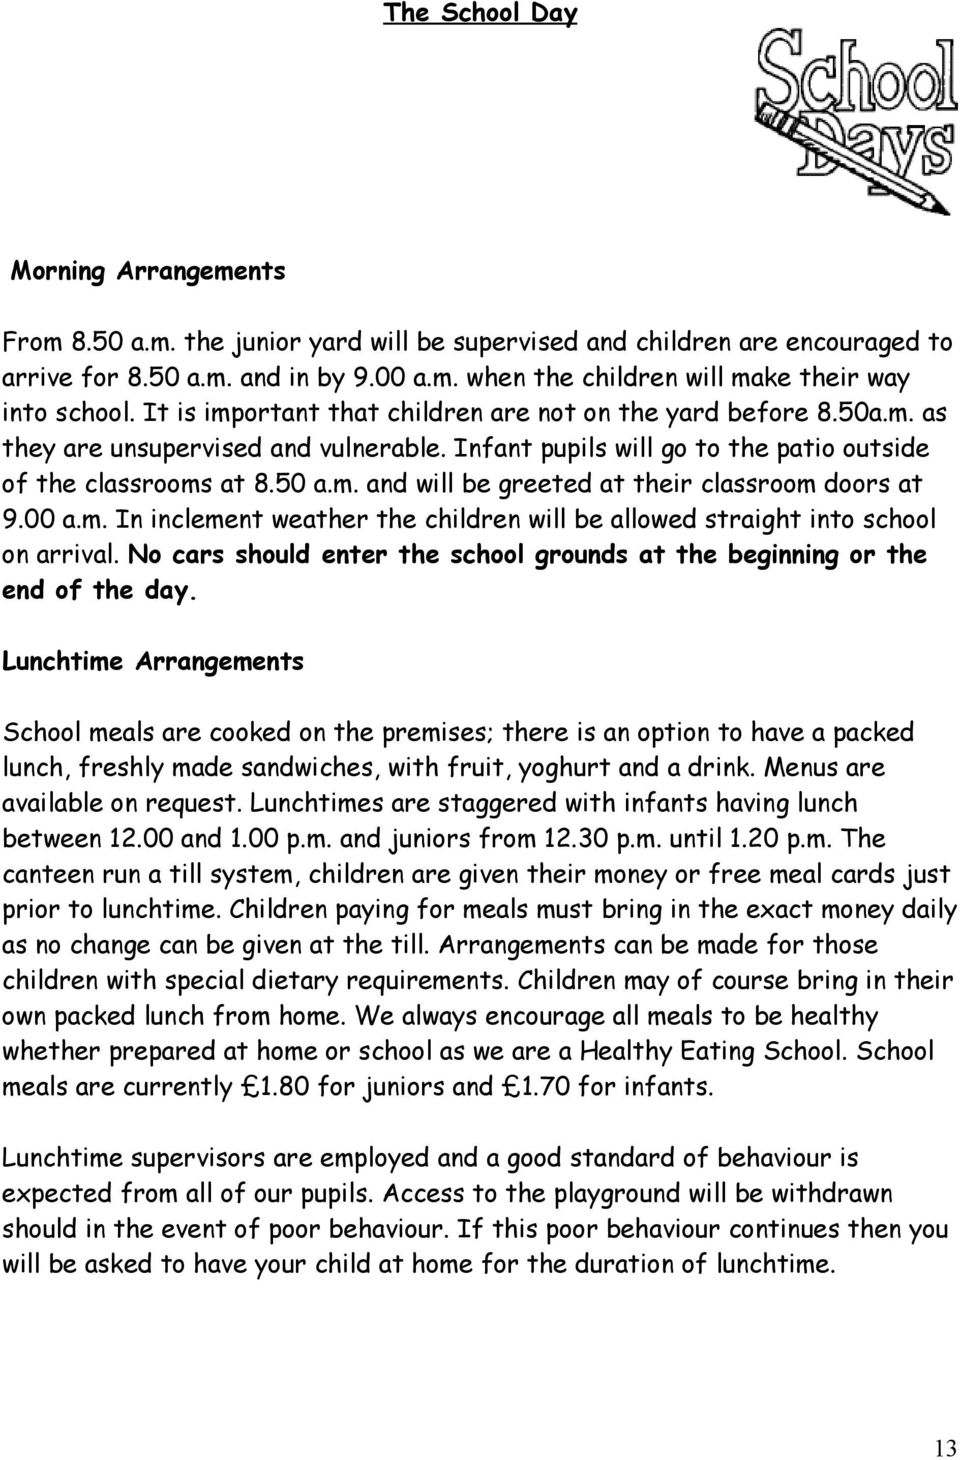 a.m. In inclement weather the children will be allowed straight into school on arrival. No cars should enter the school grounds at the beginning or the end of the day.